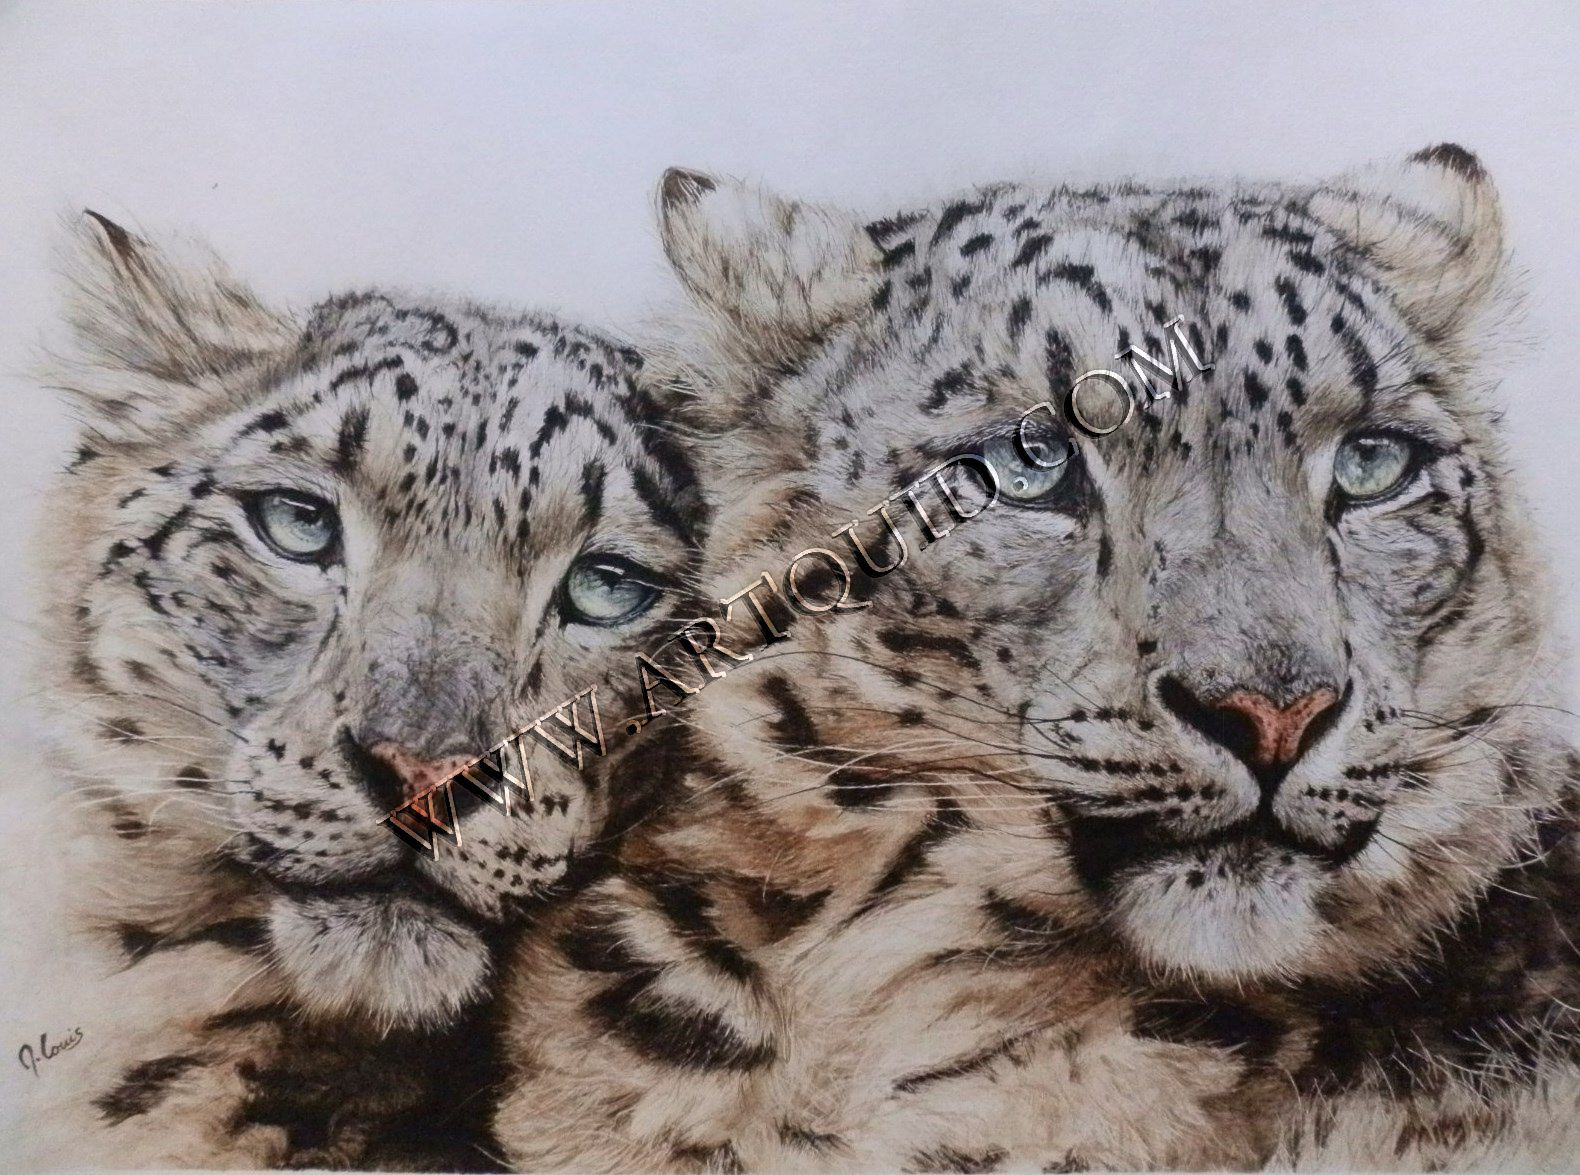 Maryse louis peintre animalier aquarellement votre for Artiste animalier